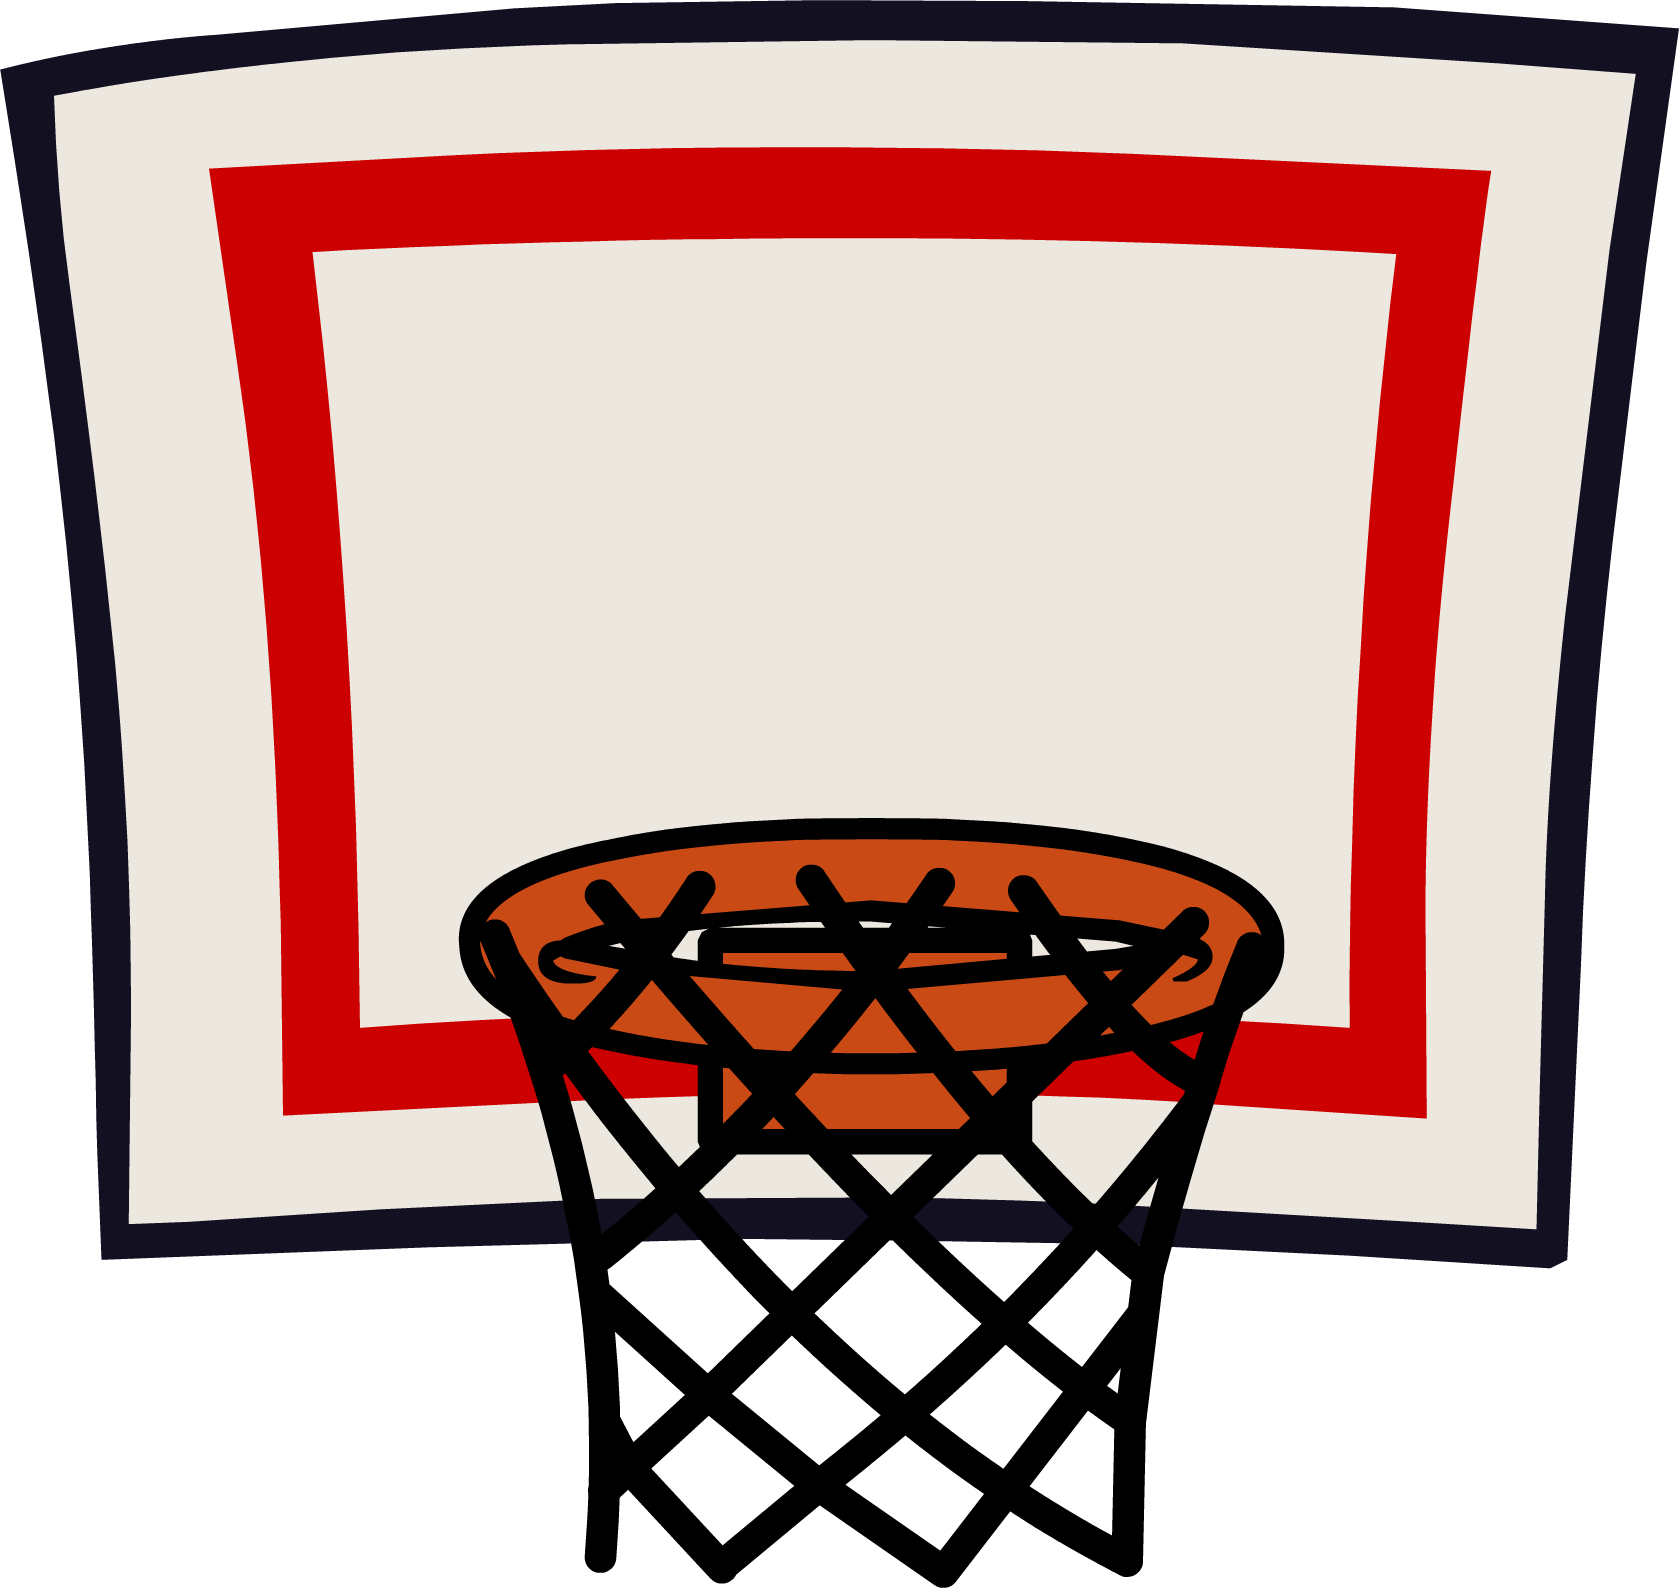 Abstract basketball hoop clipart image transparent library Basketball And Hoop Clipart | Free download best Basketball And Hoop ... image transparent library